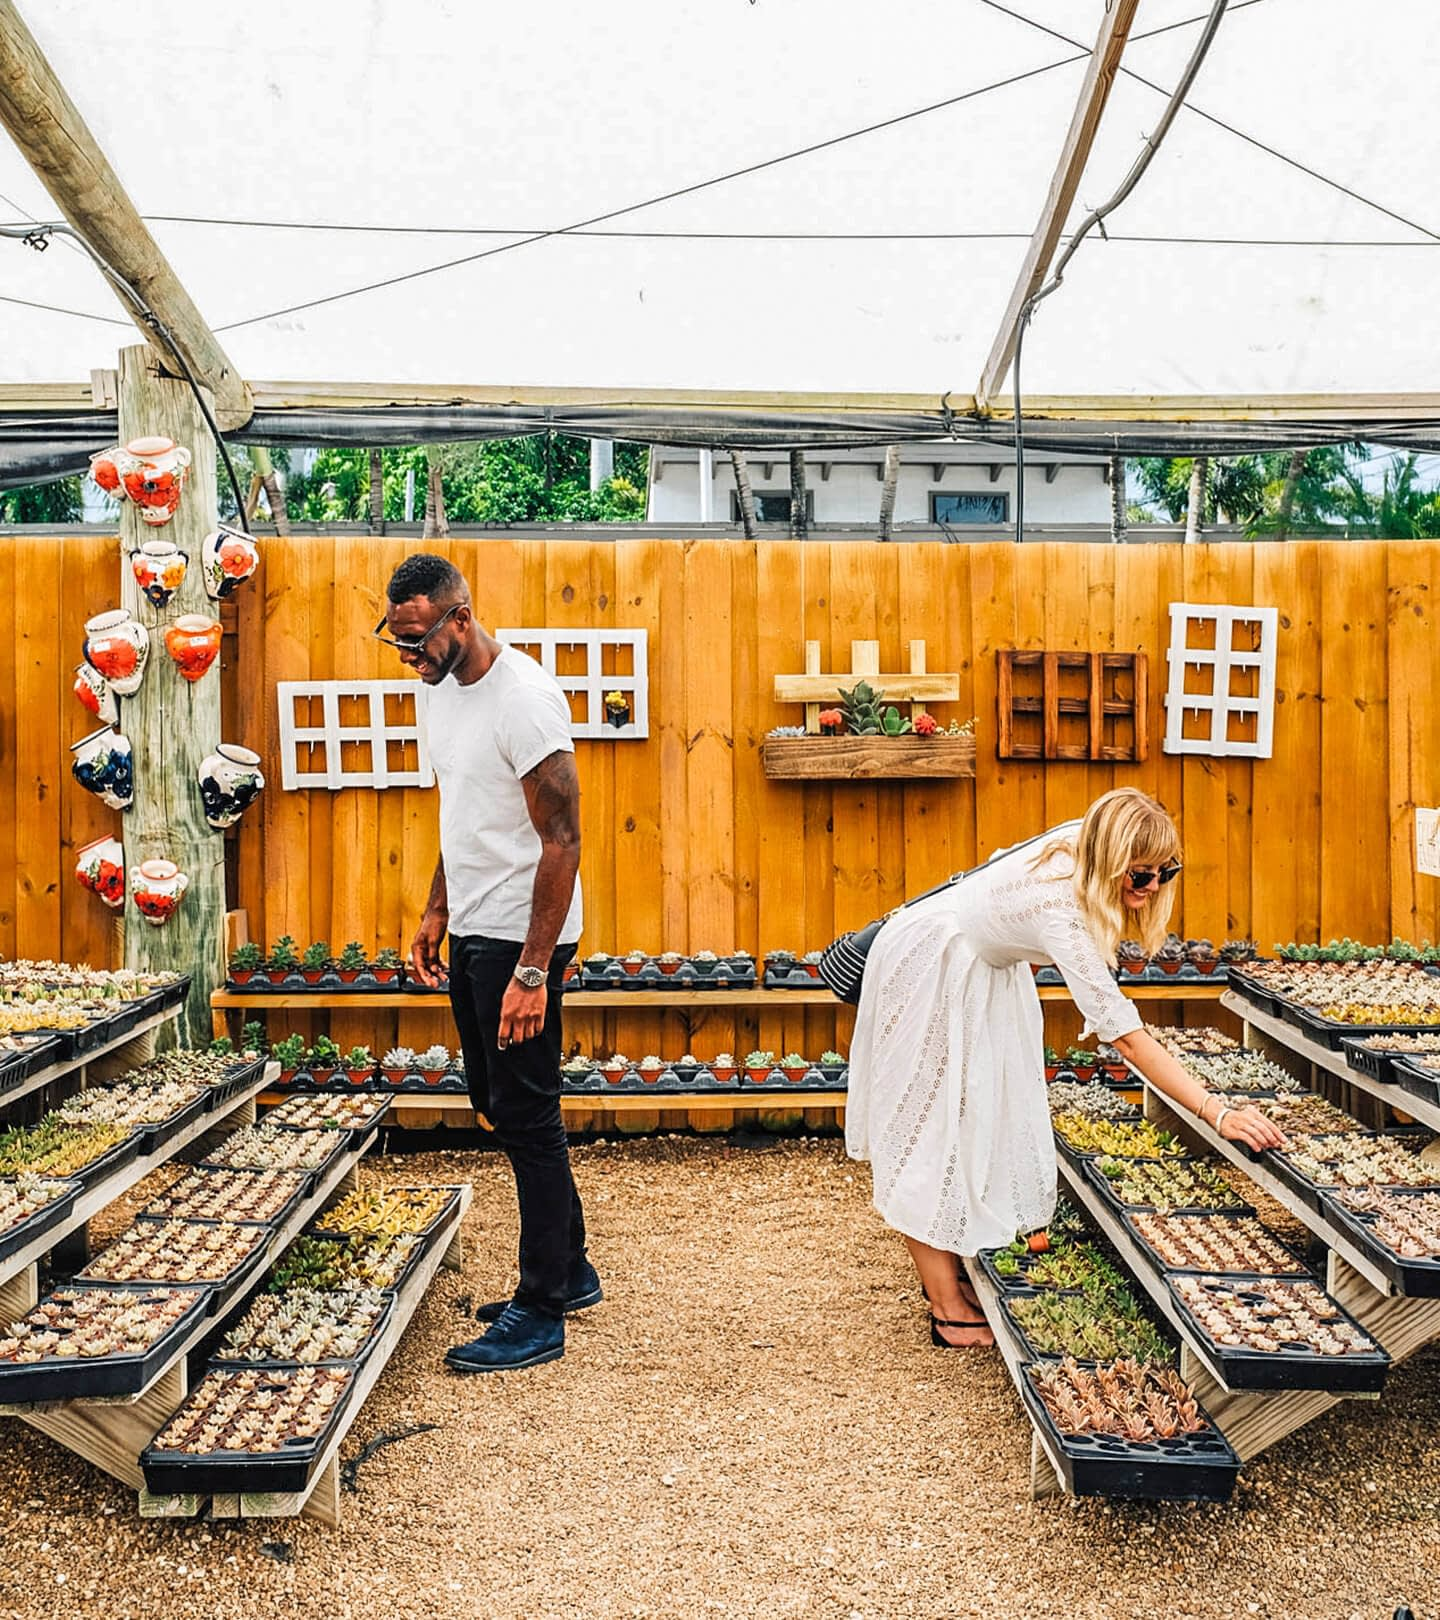 Couple shopping in an outdoor market for our experience seekers integrated campaign